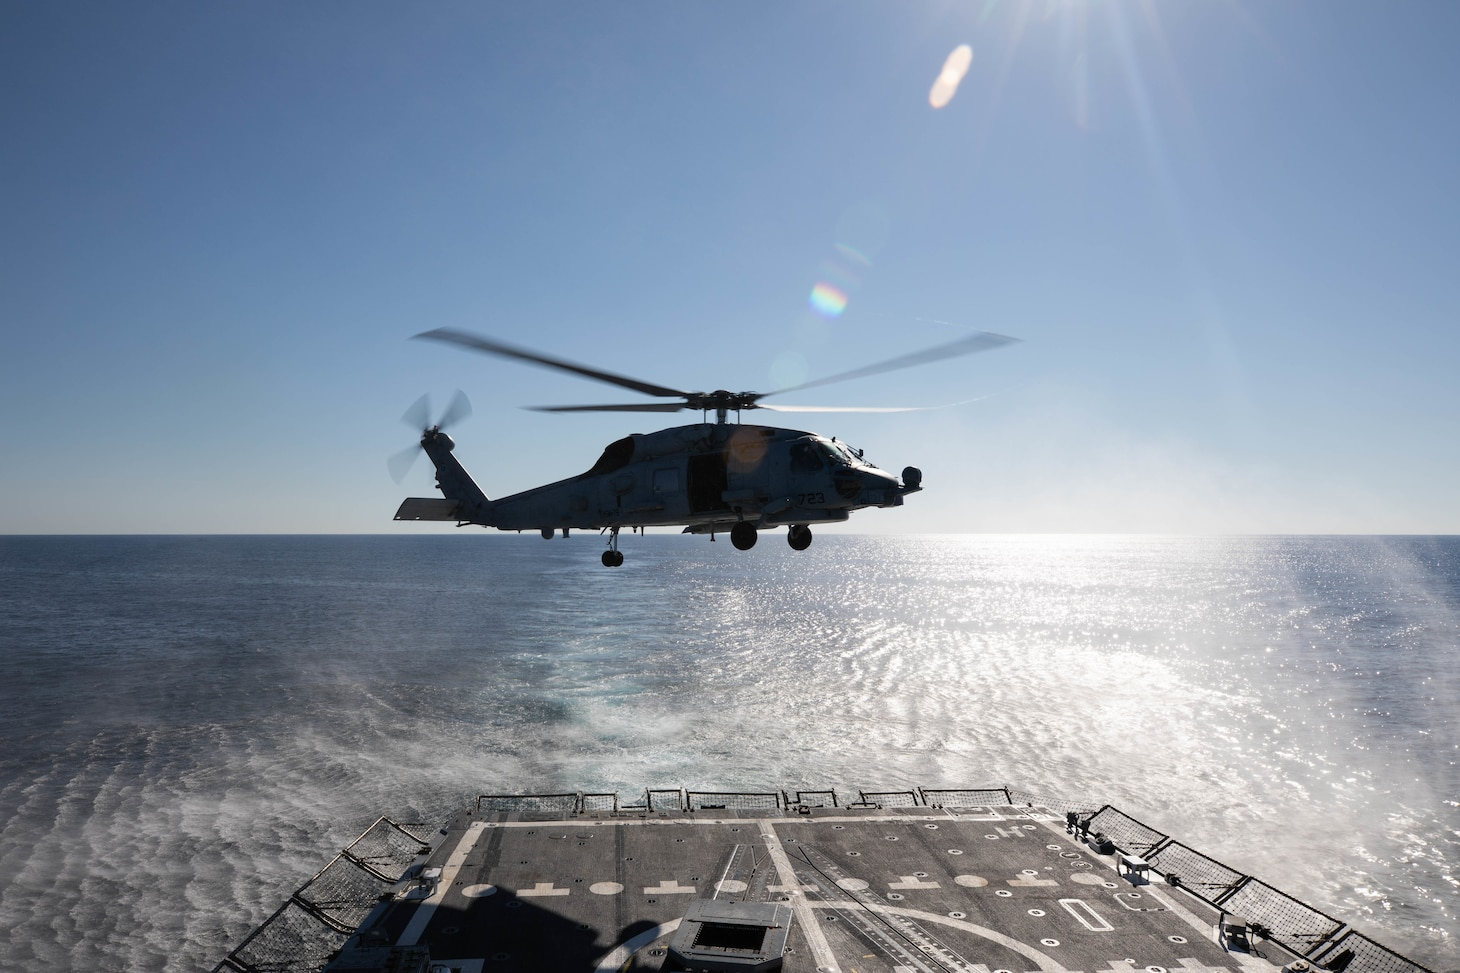 A MH-60R Seahawk helicopter, attached to the Helicopter Maritime Strike Squadron (HSM) 79, departs the flight deck of the Arleigh Burke-class guided-missile destroyer USS Roosevelt (DDG 80), March 23, 2021.